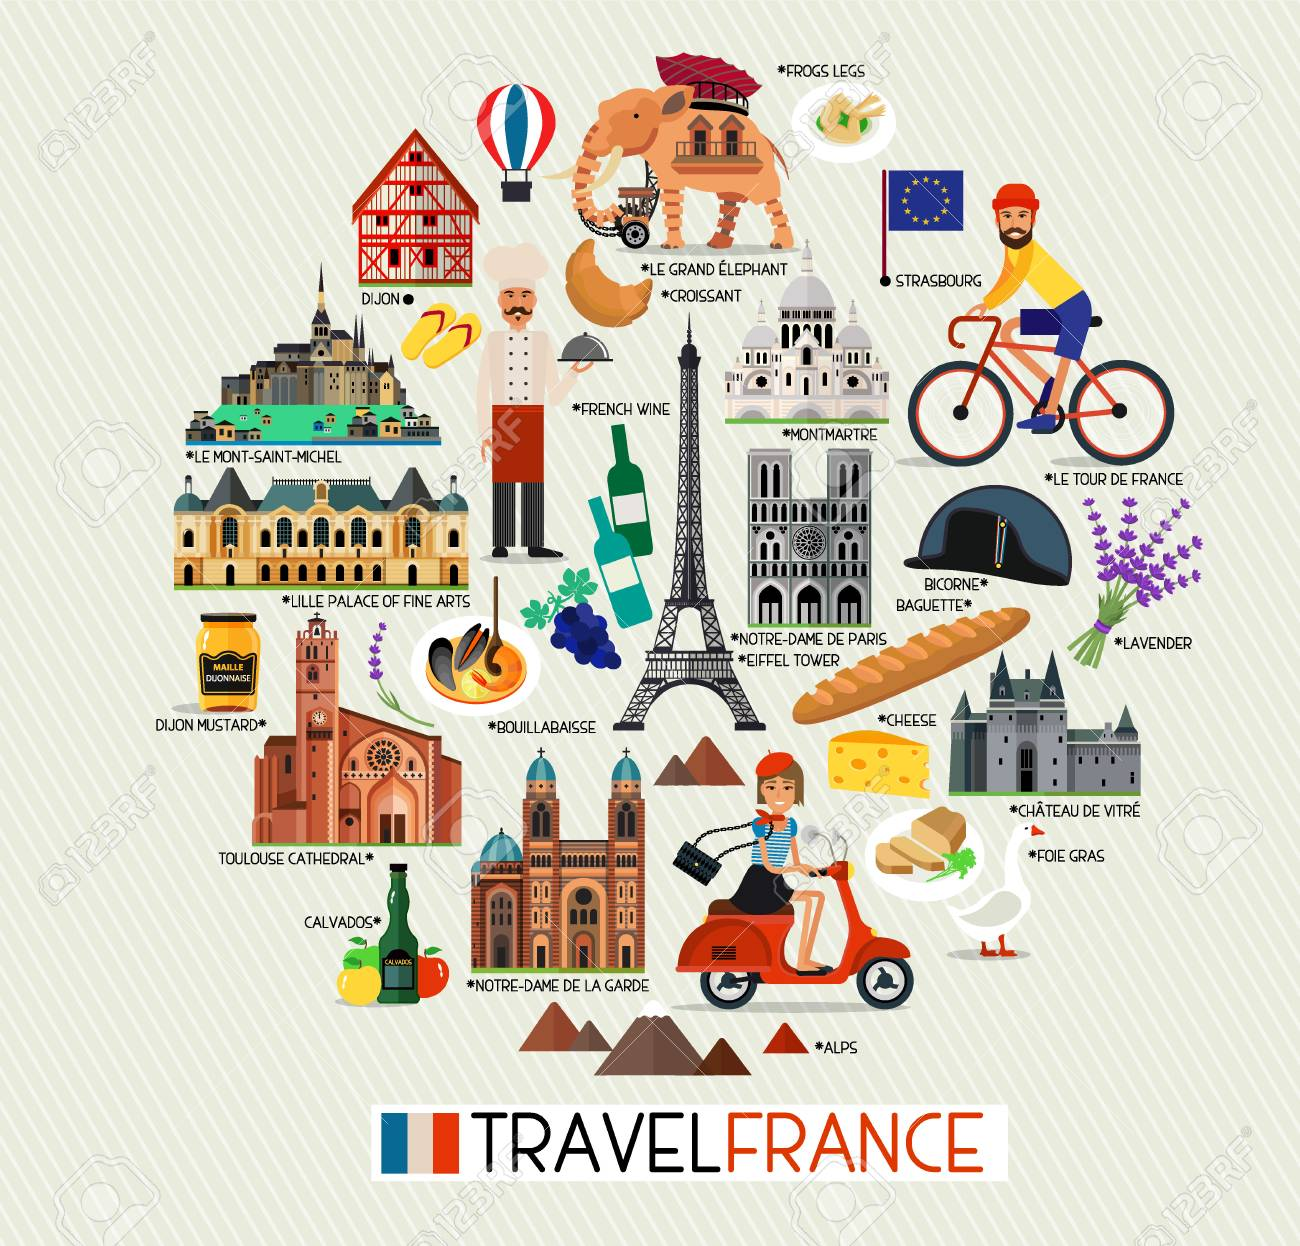 Travel Map Of France.France Landmarks And Travel Map France Travel Icons Vector